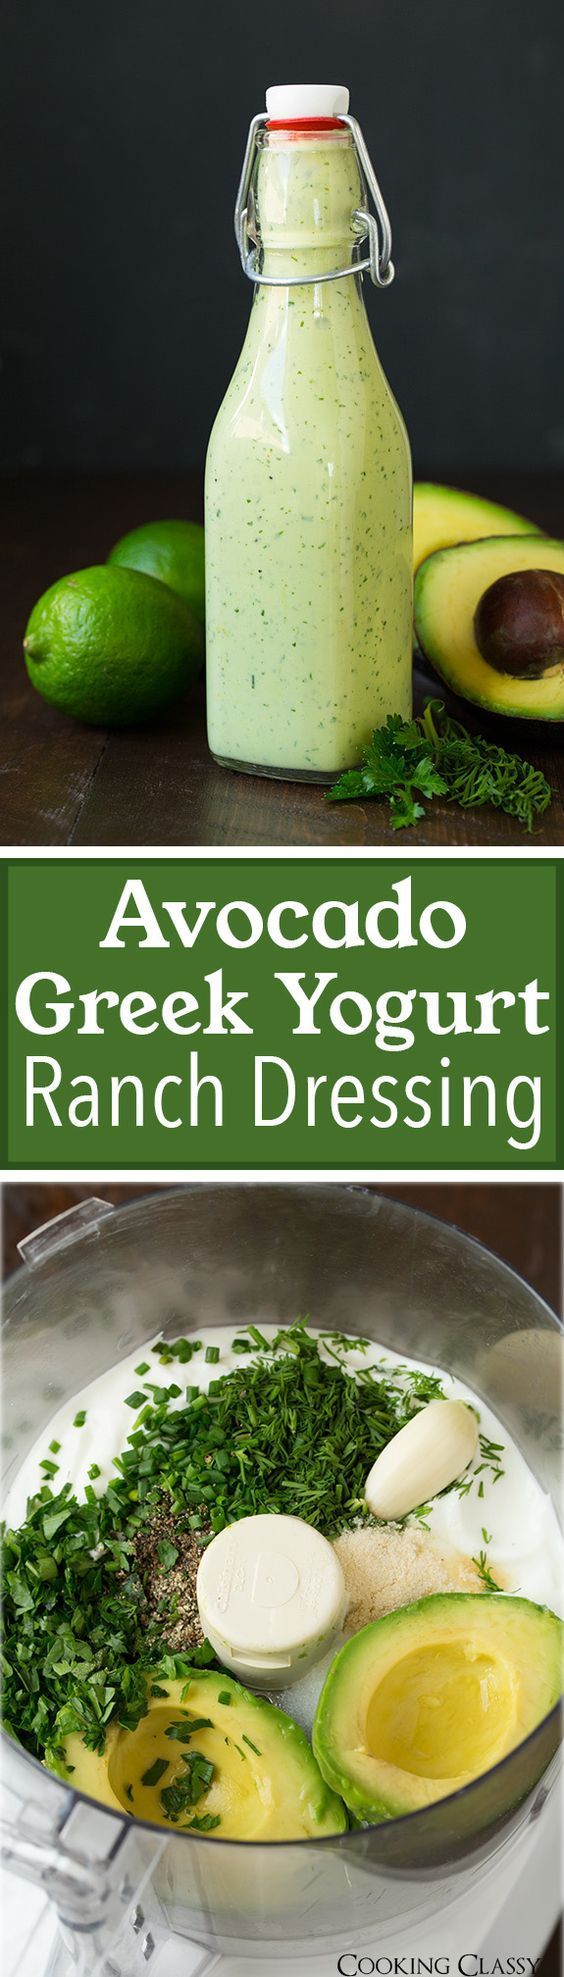 Avocado Greek Yogurt Ranch Dressing - easy made from scratch and so delicious!!